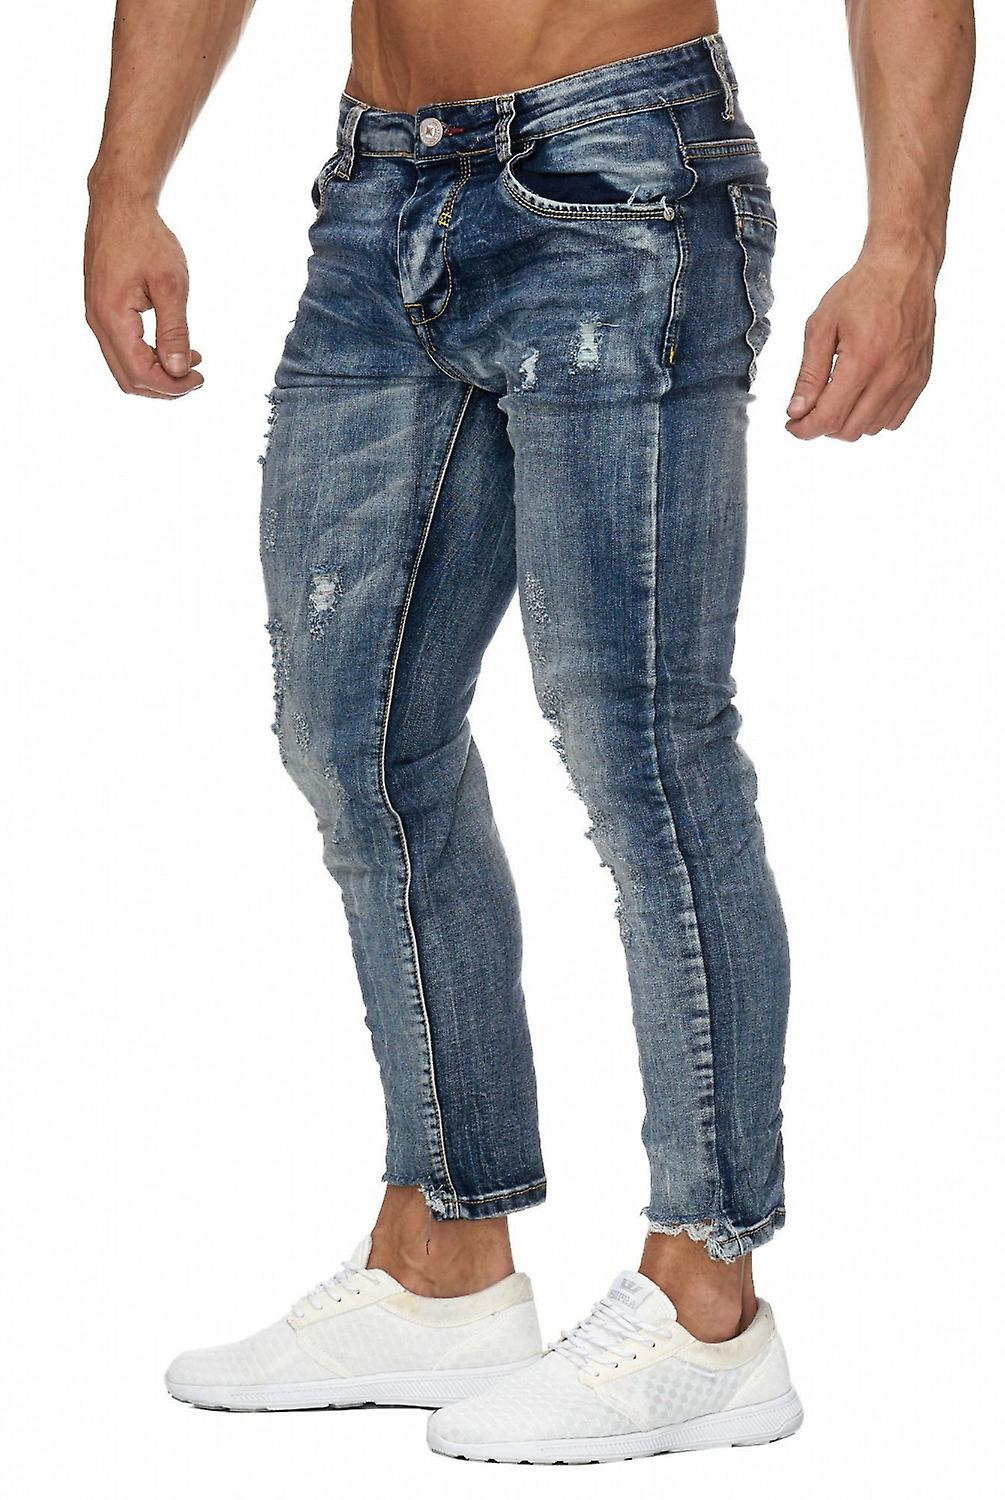 Mens Ripped 7 8 Jeans Destroyed Regular Fit Tapered Leg H1960